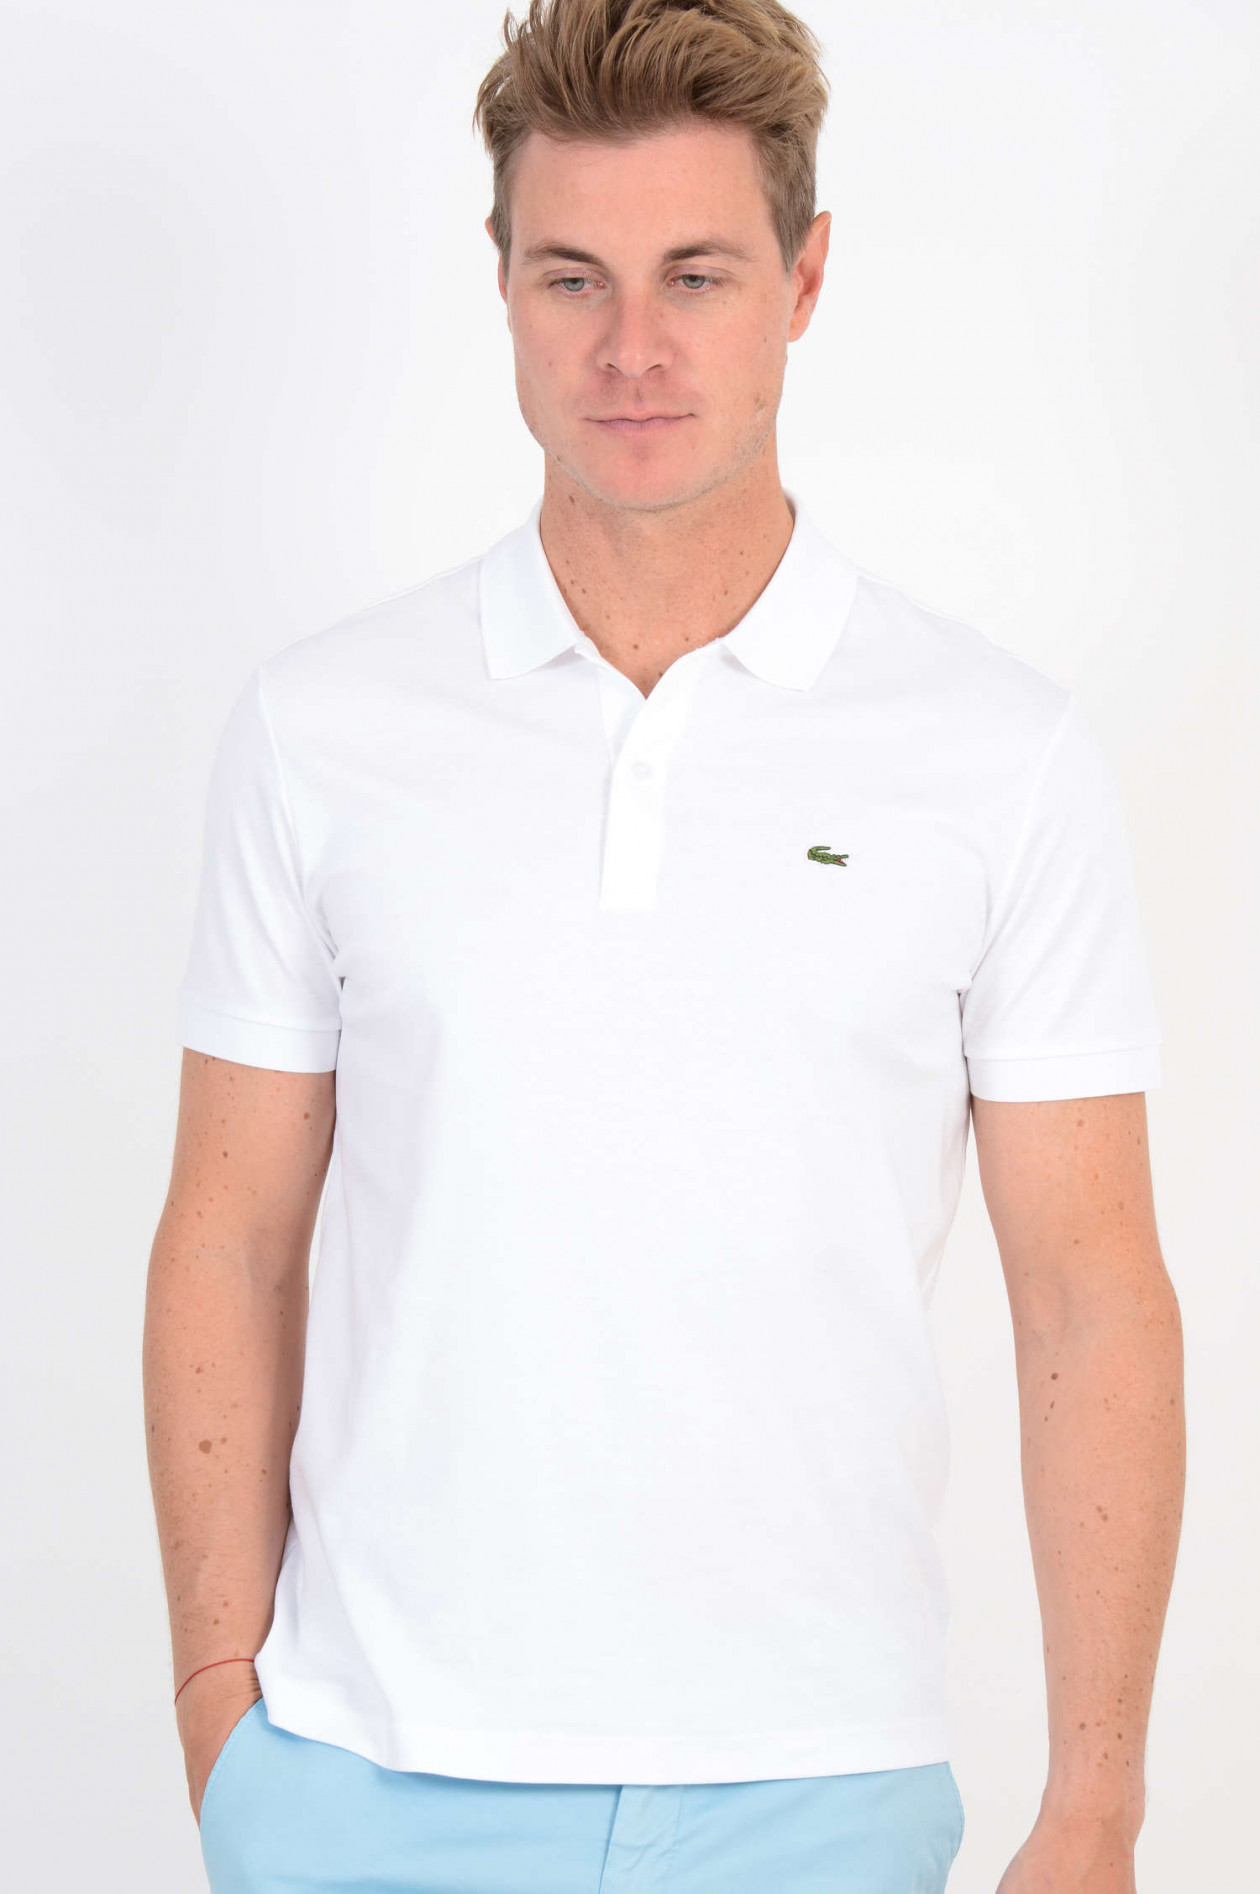 huge selection of 028f6 fa3f6 Jersey Poloshirt in Weiß